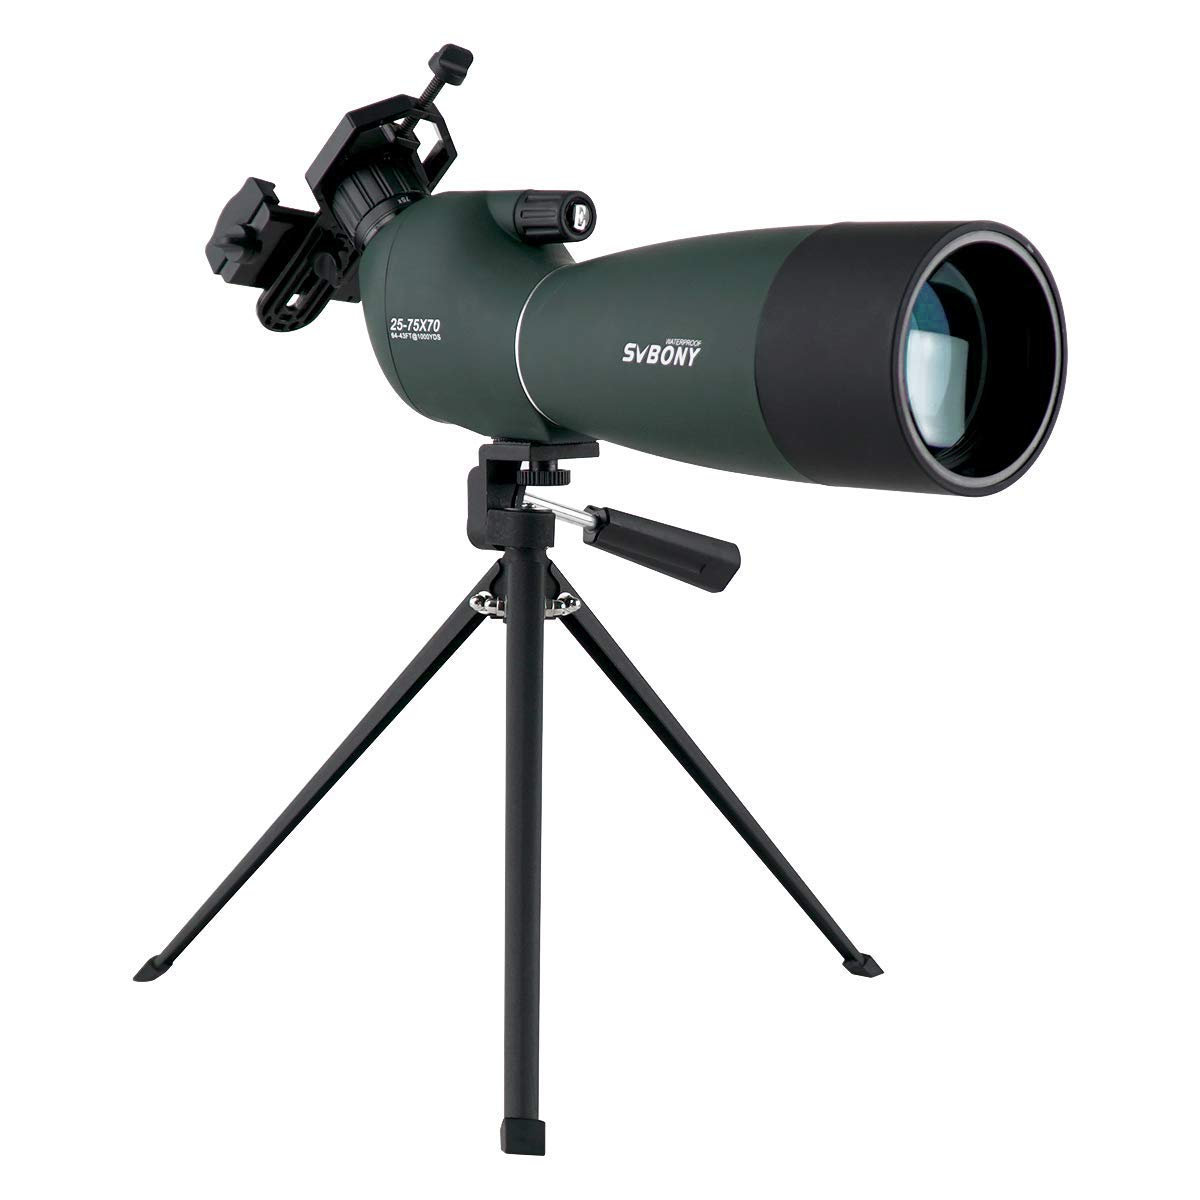 SVBONY Spotting Telescope 25 75x70mm Birdwatching